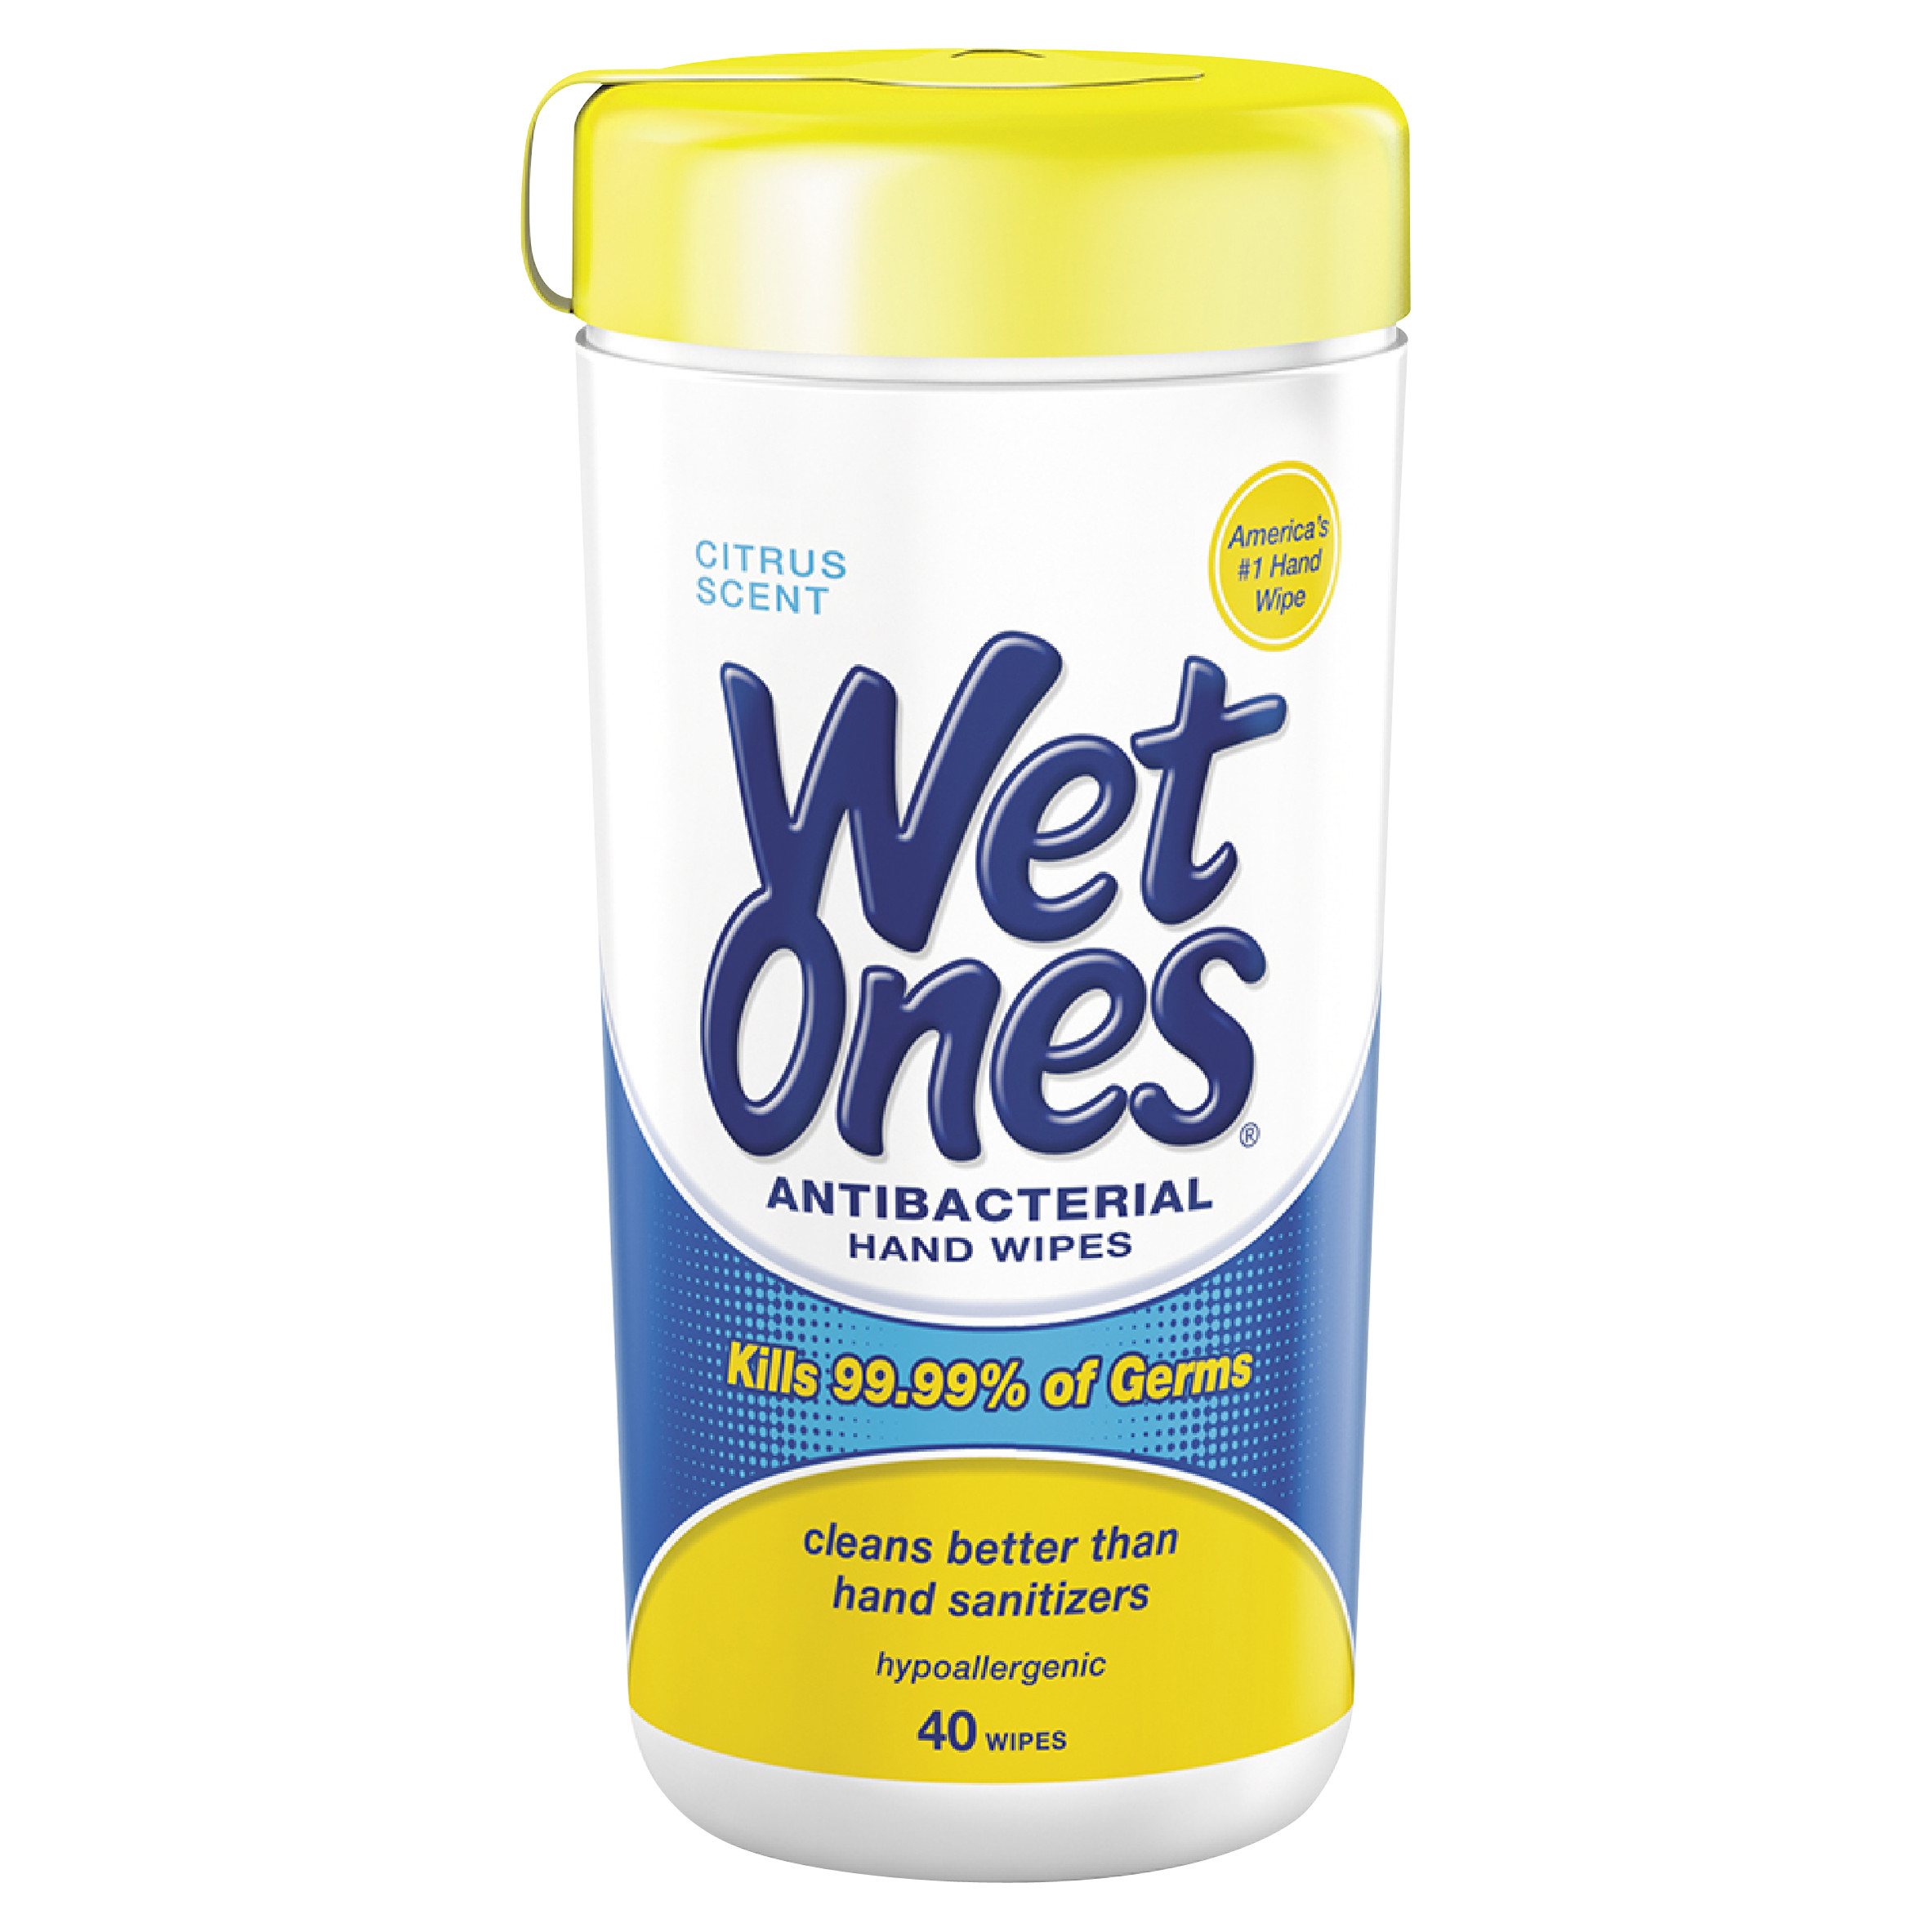 Wet Ones Antibacterial Hand Wipes Citrus Scent Canister - 40 Count